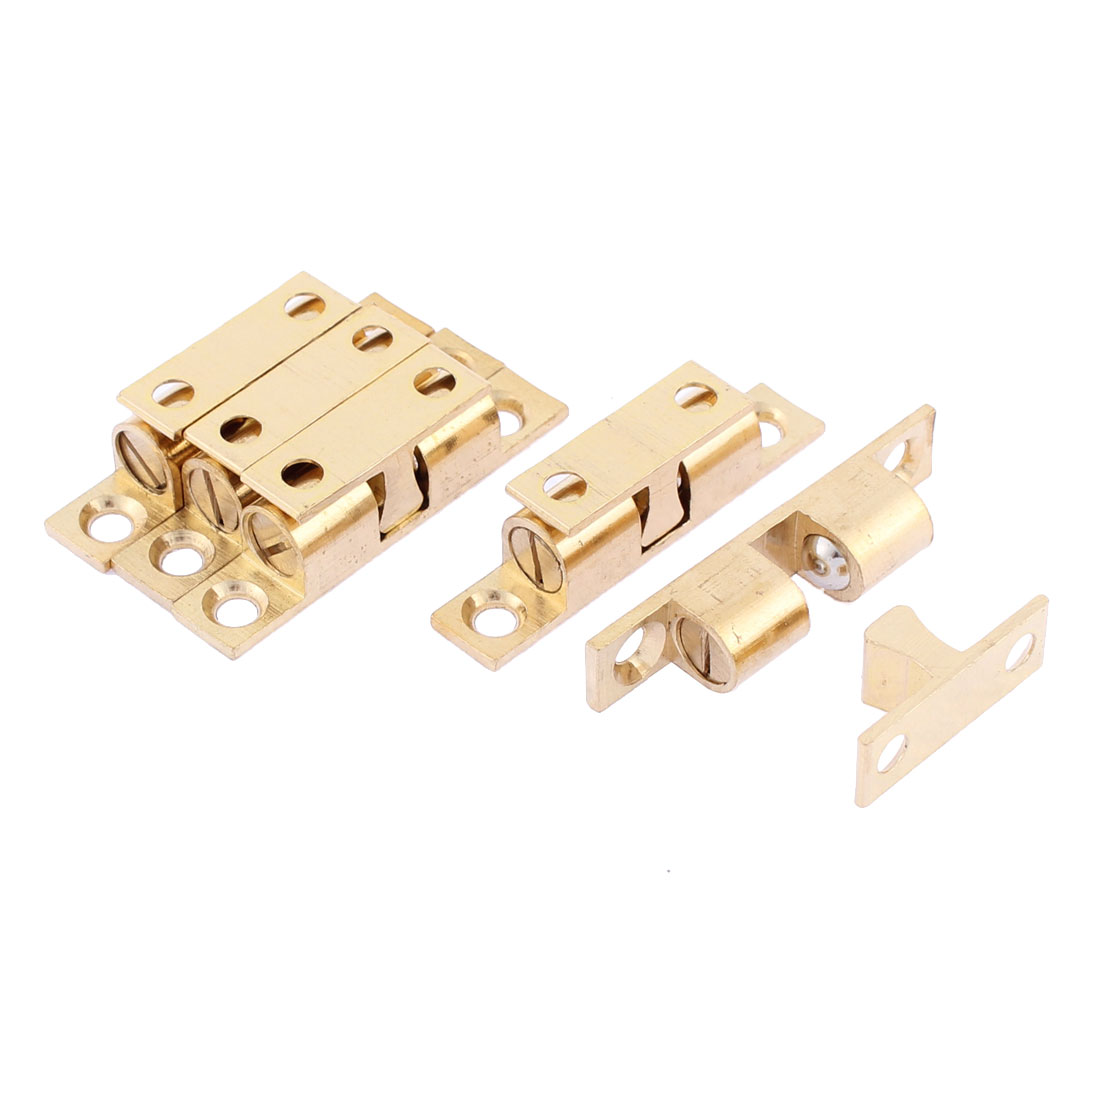 Home Cabinet Door Brass Double Ball Catch 42mm Length 5pcs